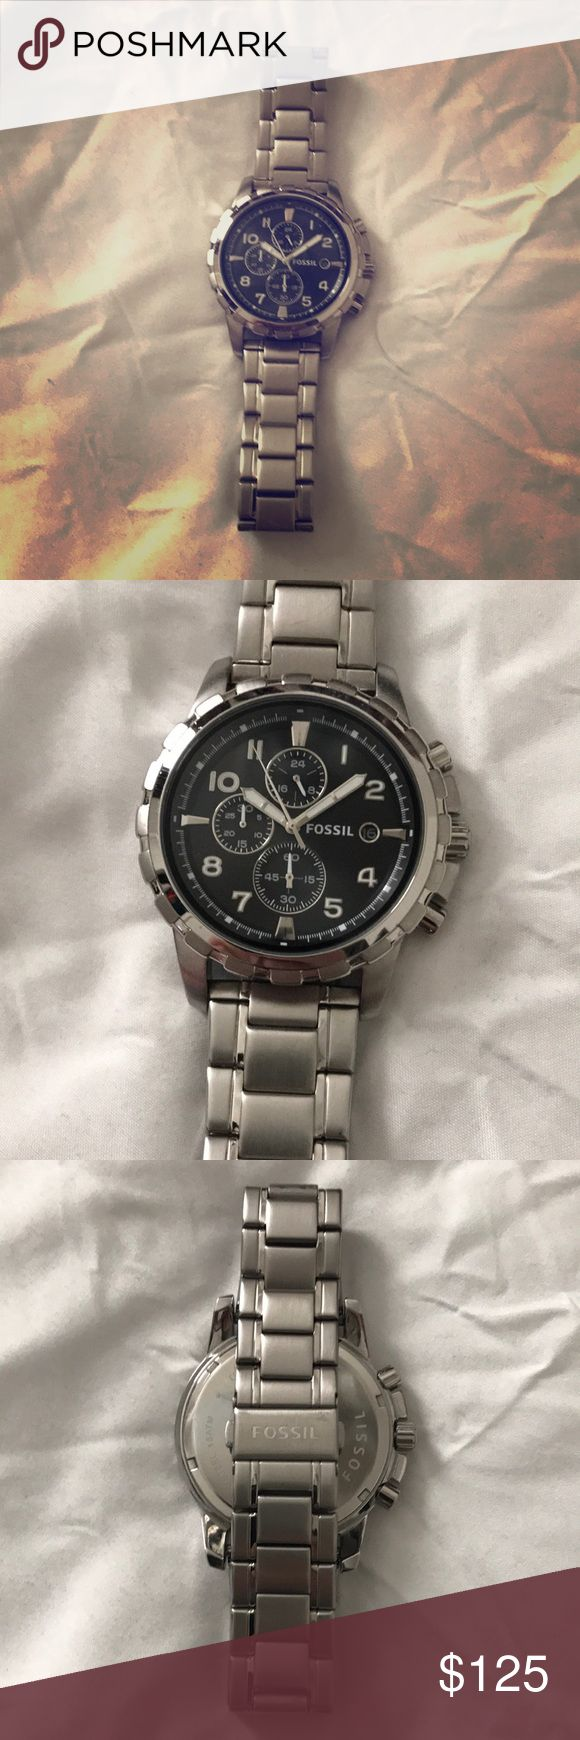 Men's fossil chronograph watch Men's fossil dean stainless steel and black face chronograph watch fall 4542 861207 in very good  worn condition Fossil Accessories Watches